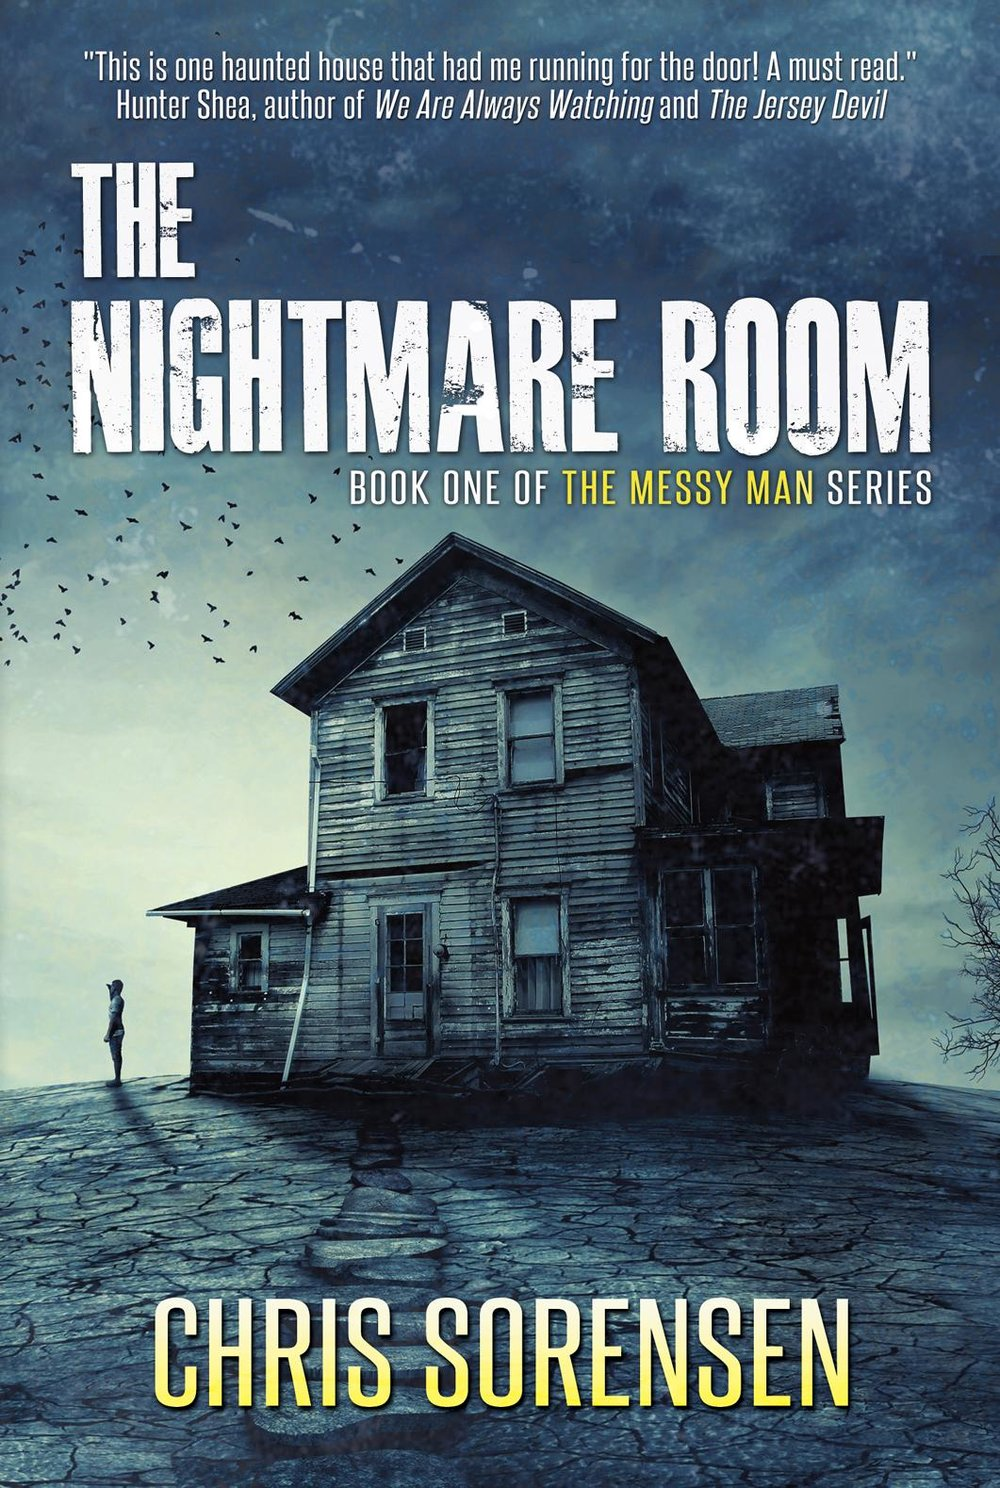 The+Nightmare+Room+-+Chris+Sorensen.jpeg